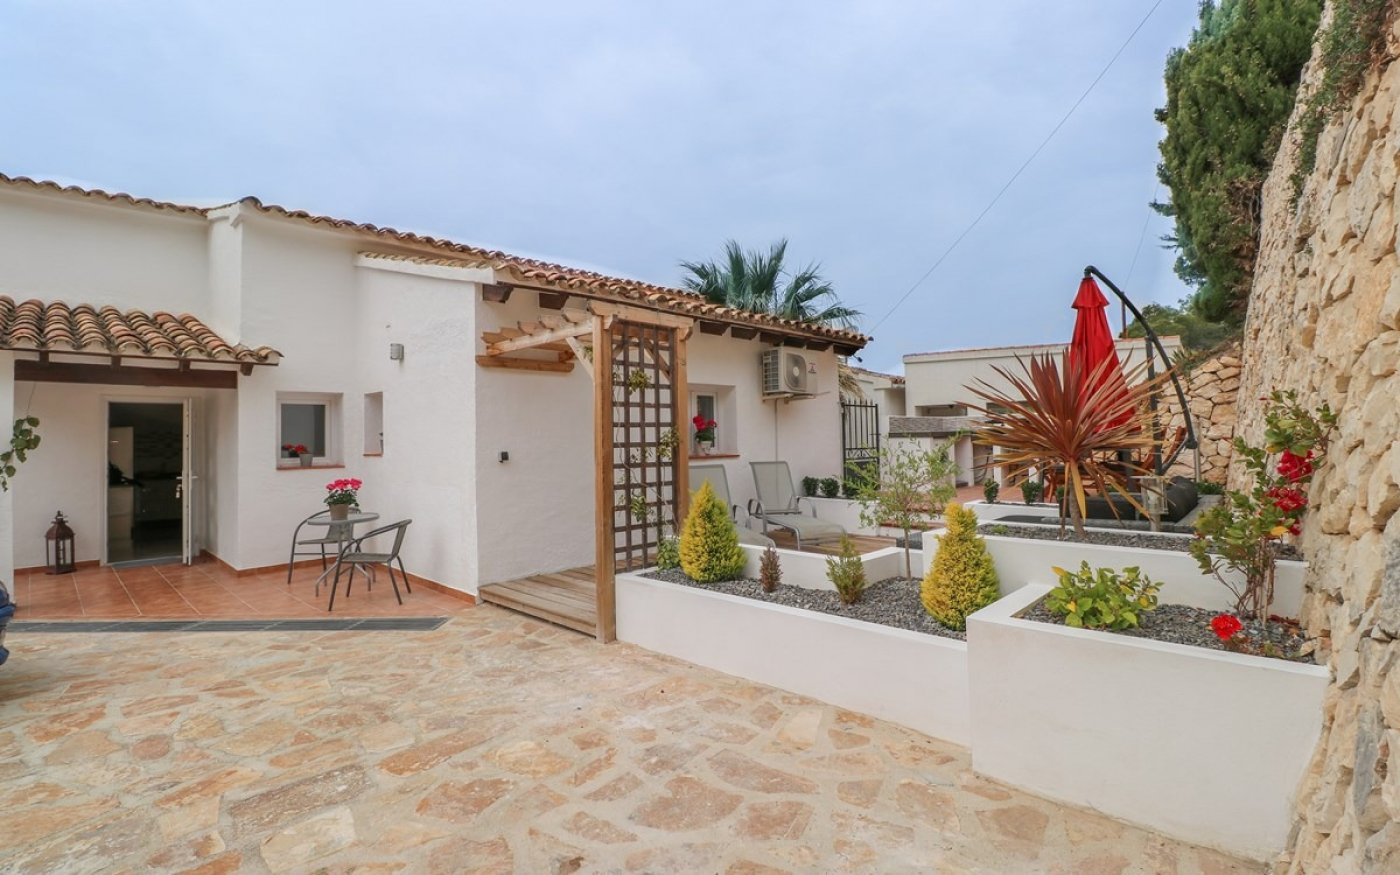 Villa - Ready To Move And Live - Cometa - Moraira